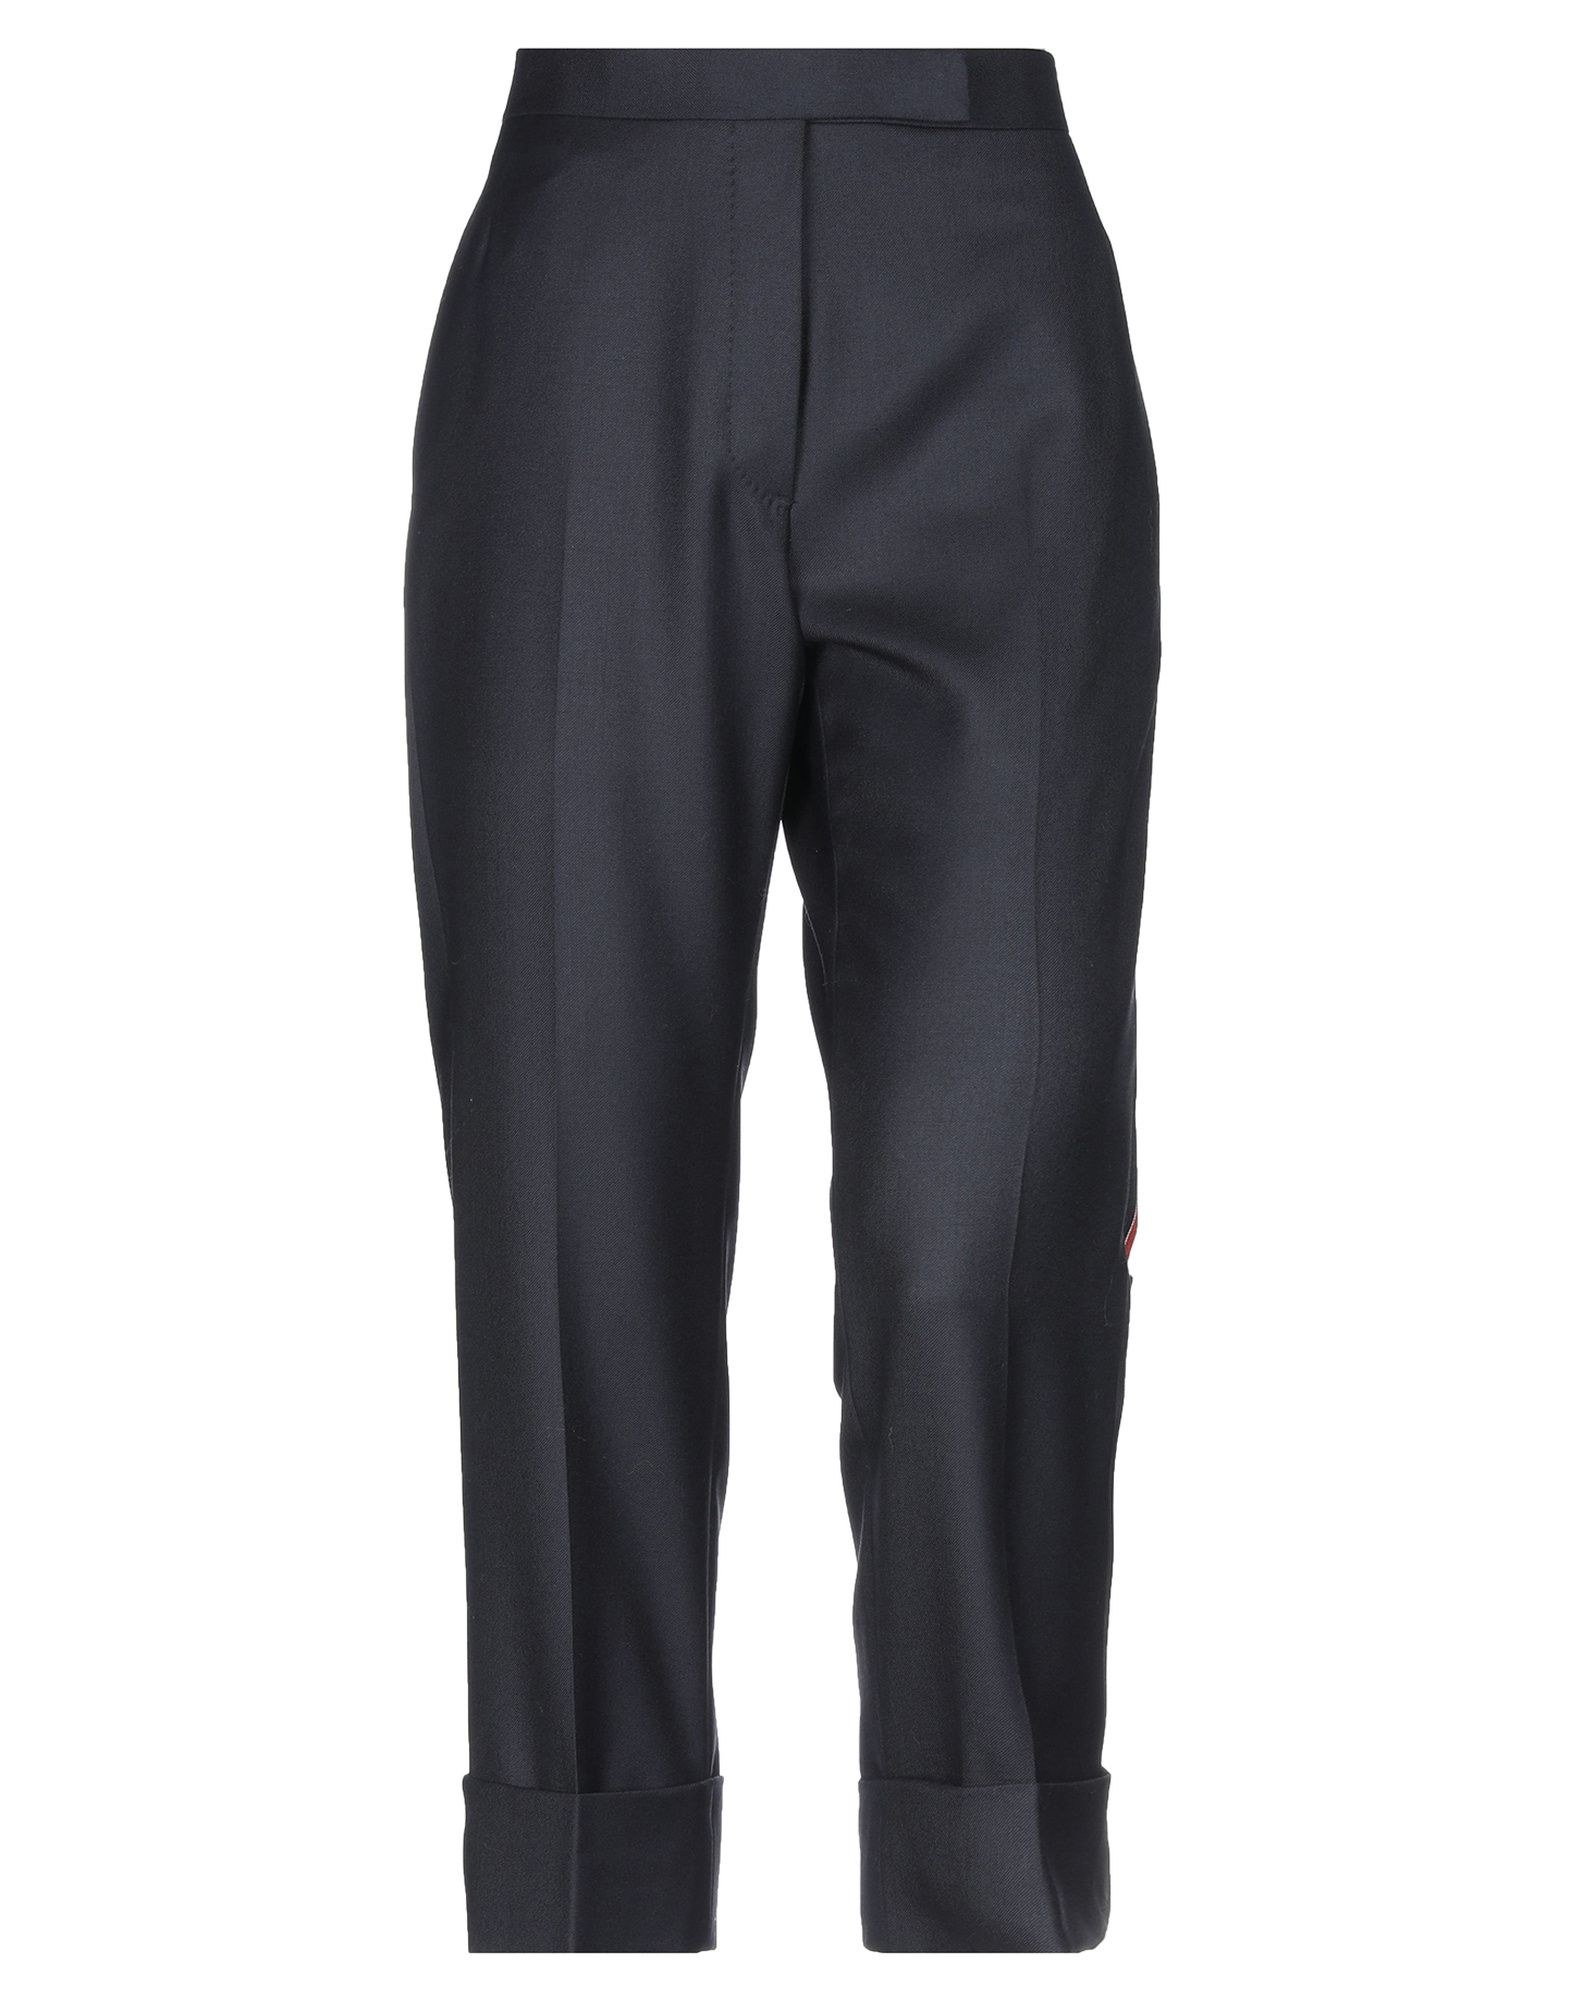 THOM BROWNE Casual pants. flannel, side seam stripes, basic solid color, mid rise, regular fit, tapered leg, hook-and-bar, button fly closure, multipockets, cuffed hems. 100% Wool